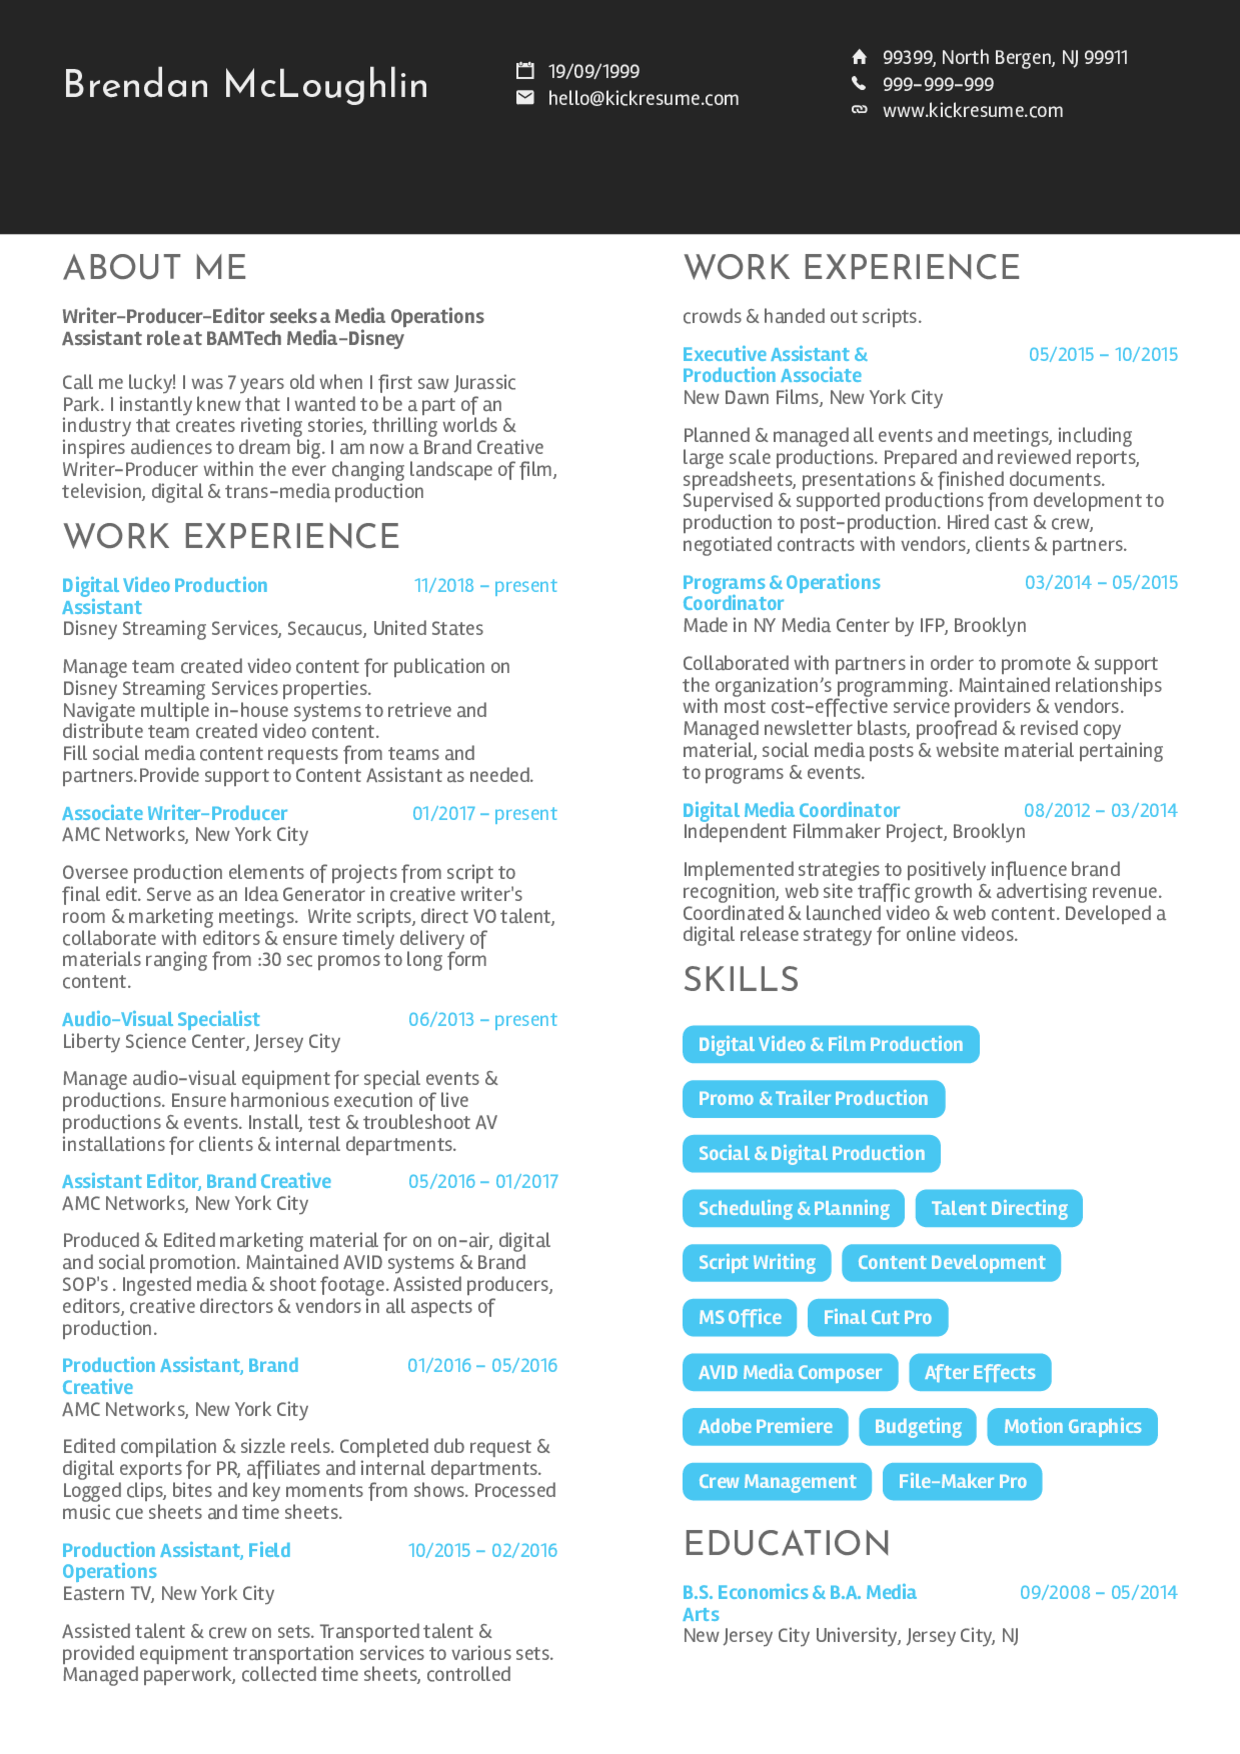 Video Production Assistant CV sample